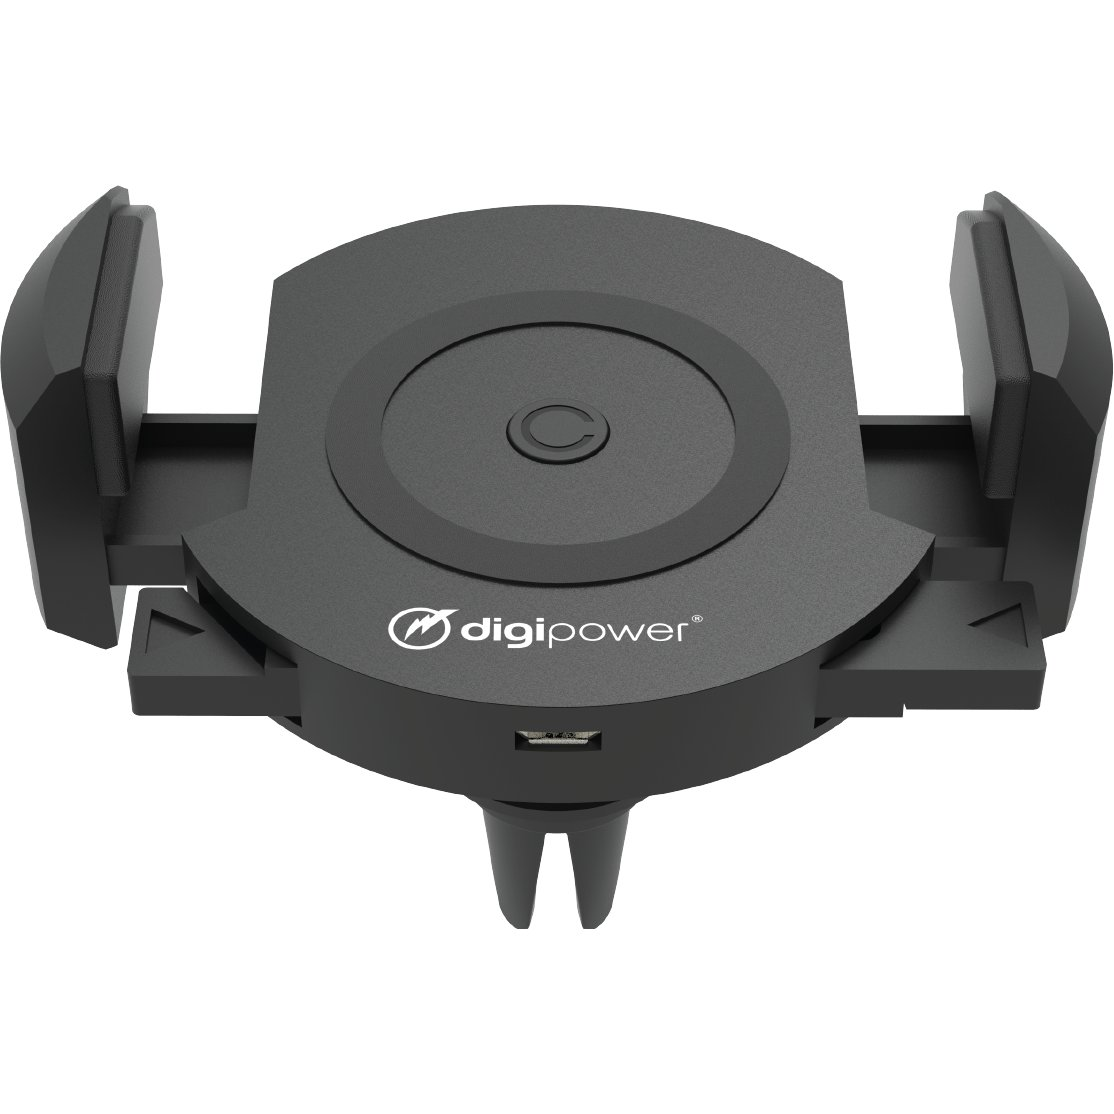 DigiPower Car Vent Mount Wireless Charger